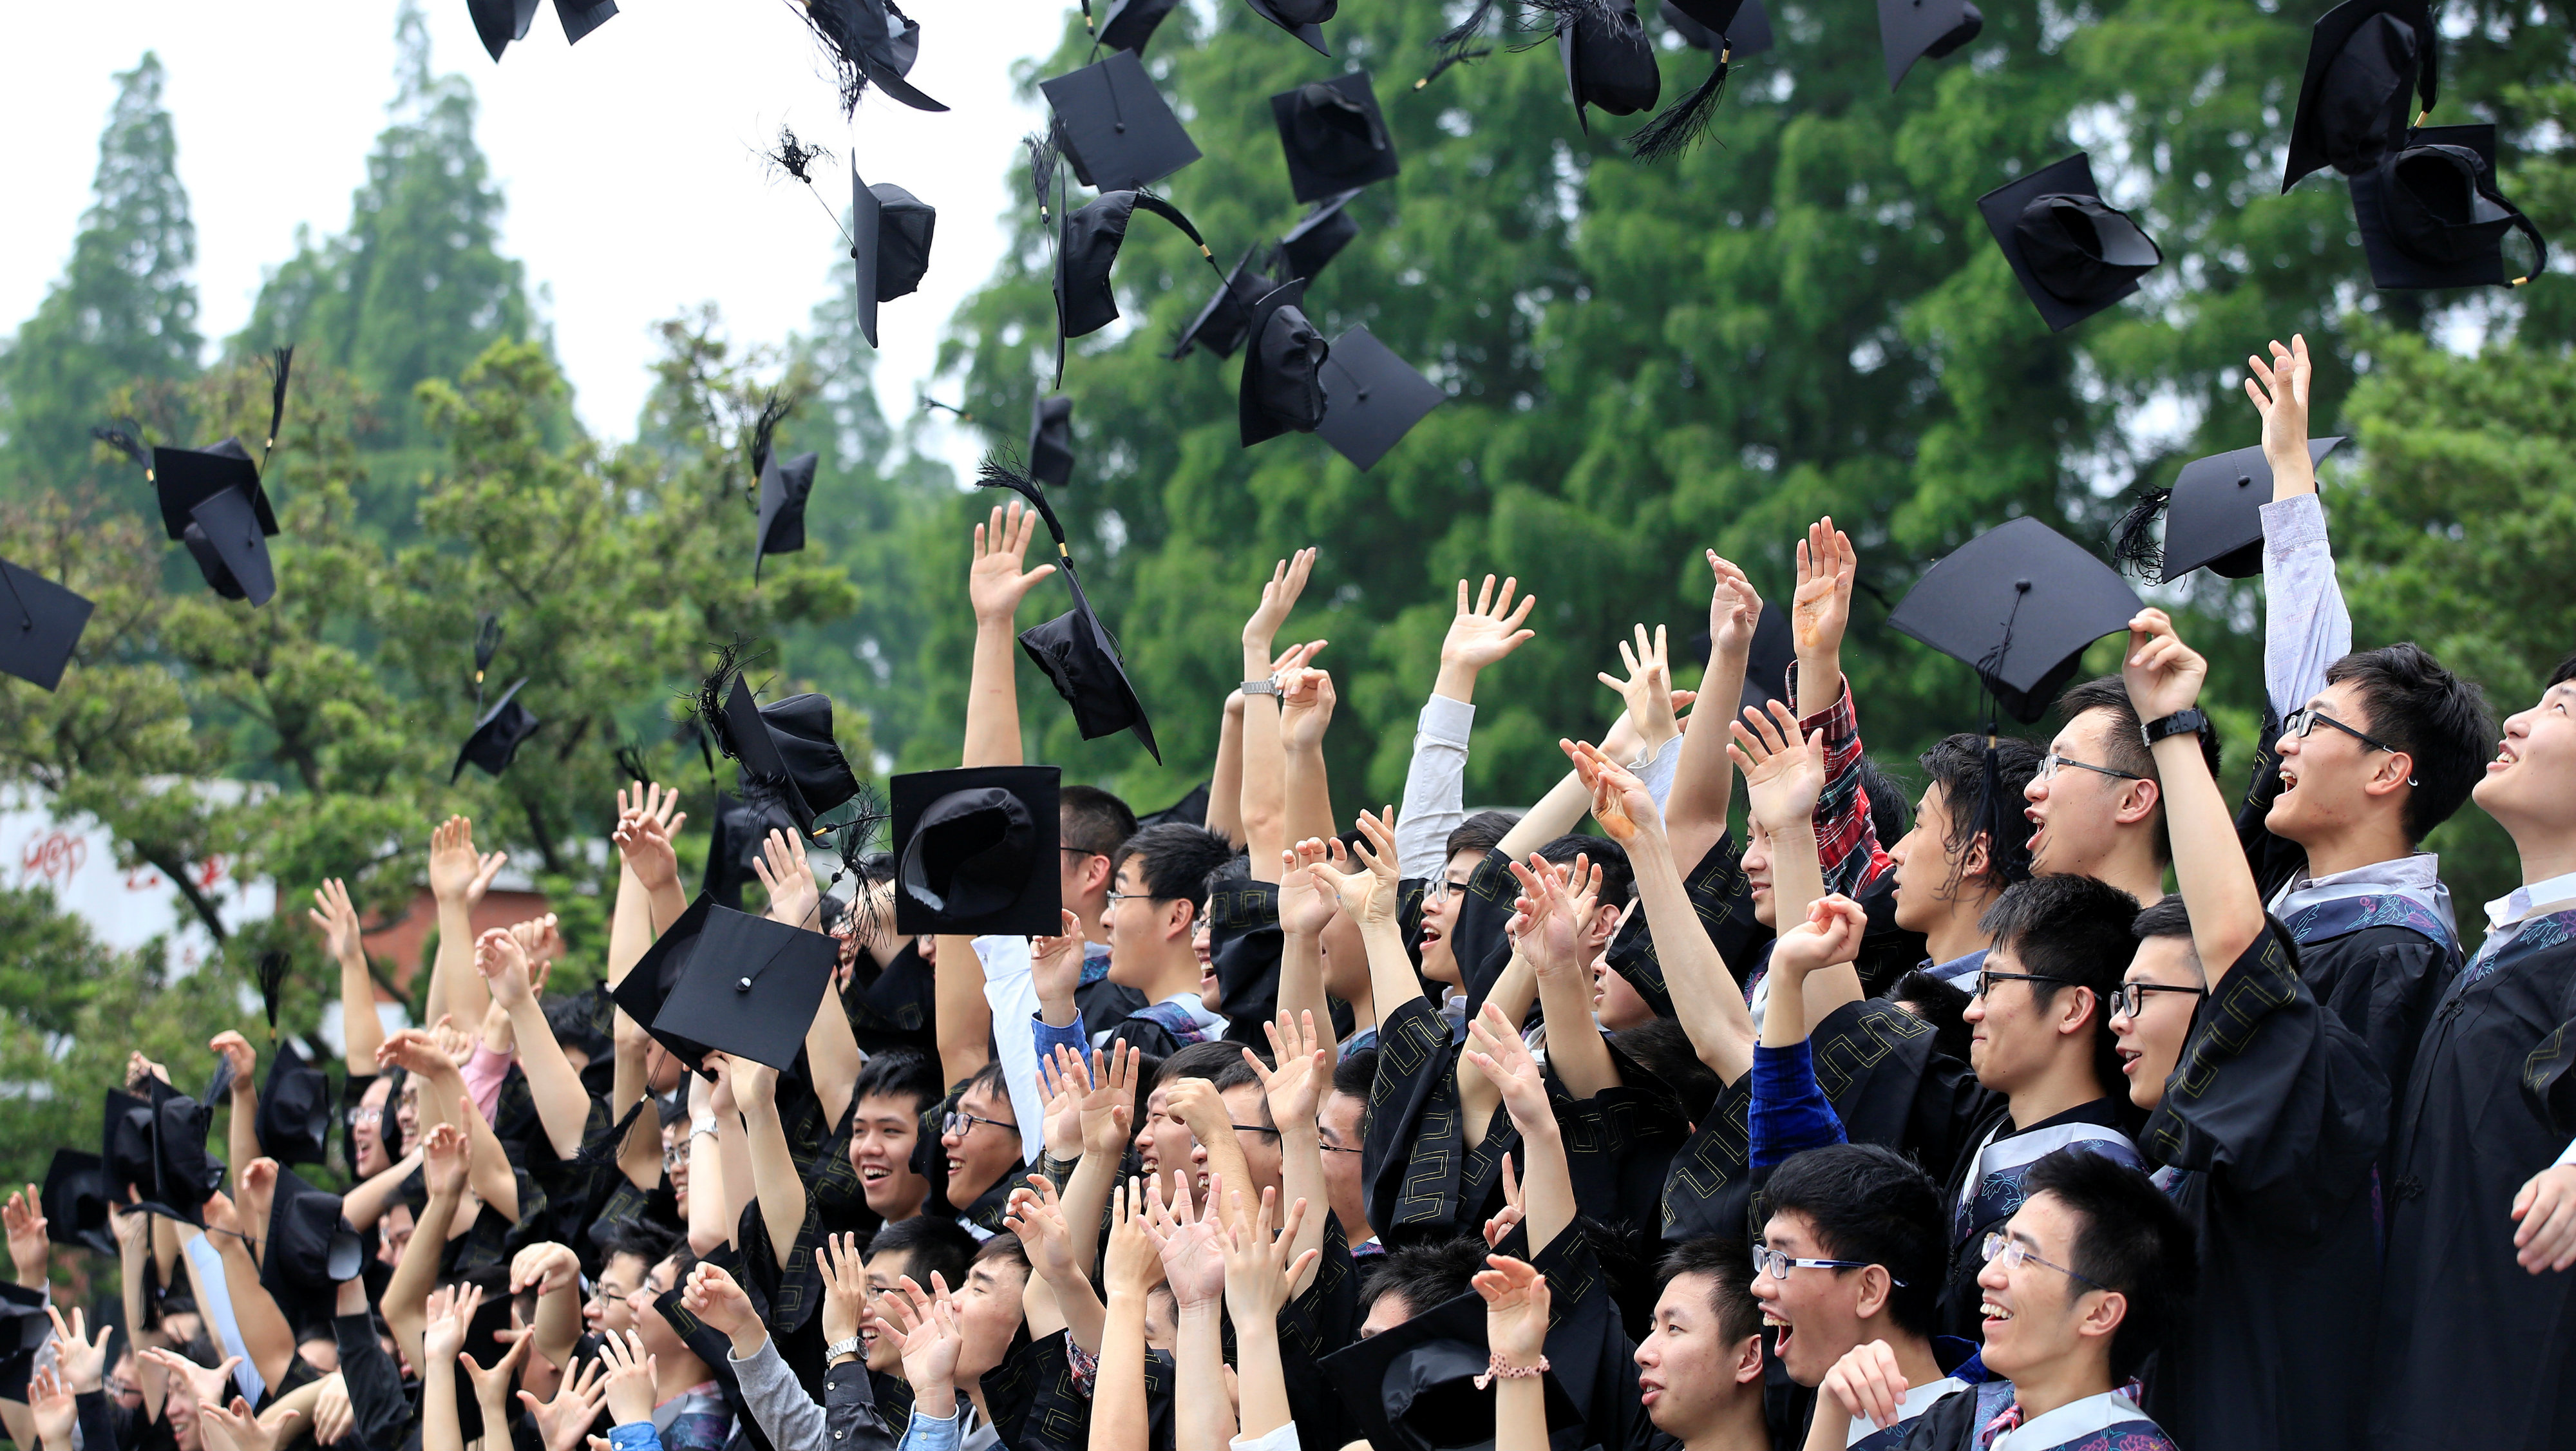 DATE IMPORTED:May 31, 2016Graduates throw their mortar boards as they pose for pictures at Fudan University in Shanghai, China May 31, 2016